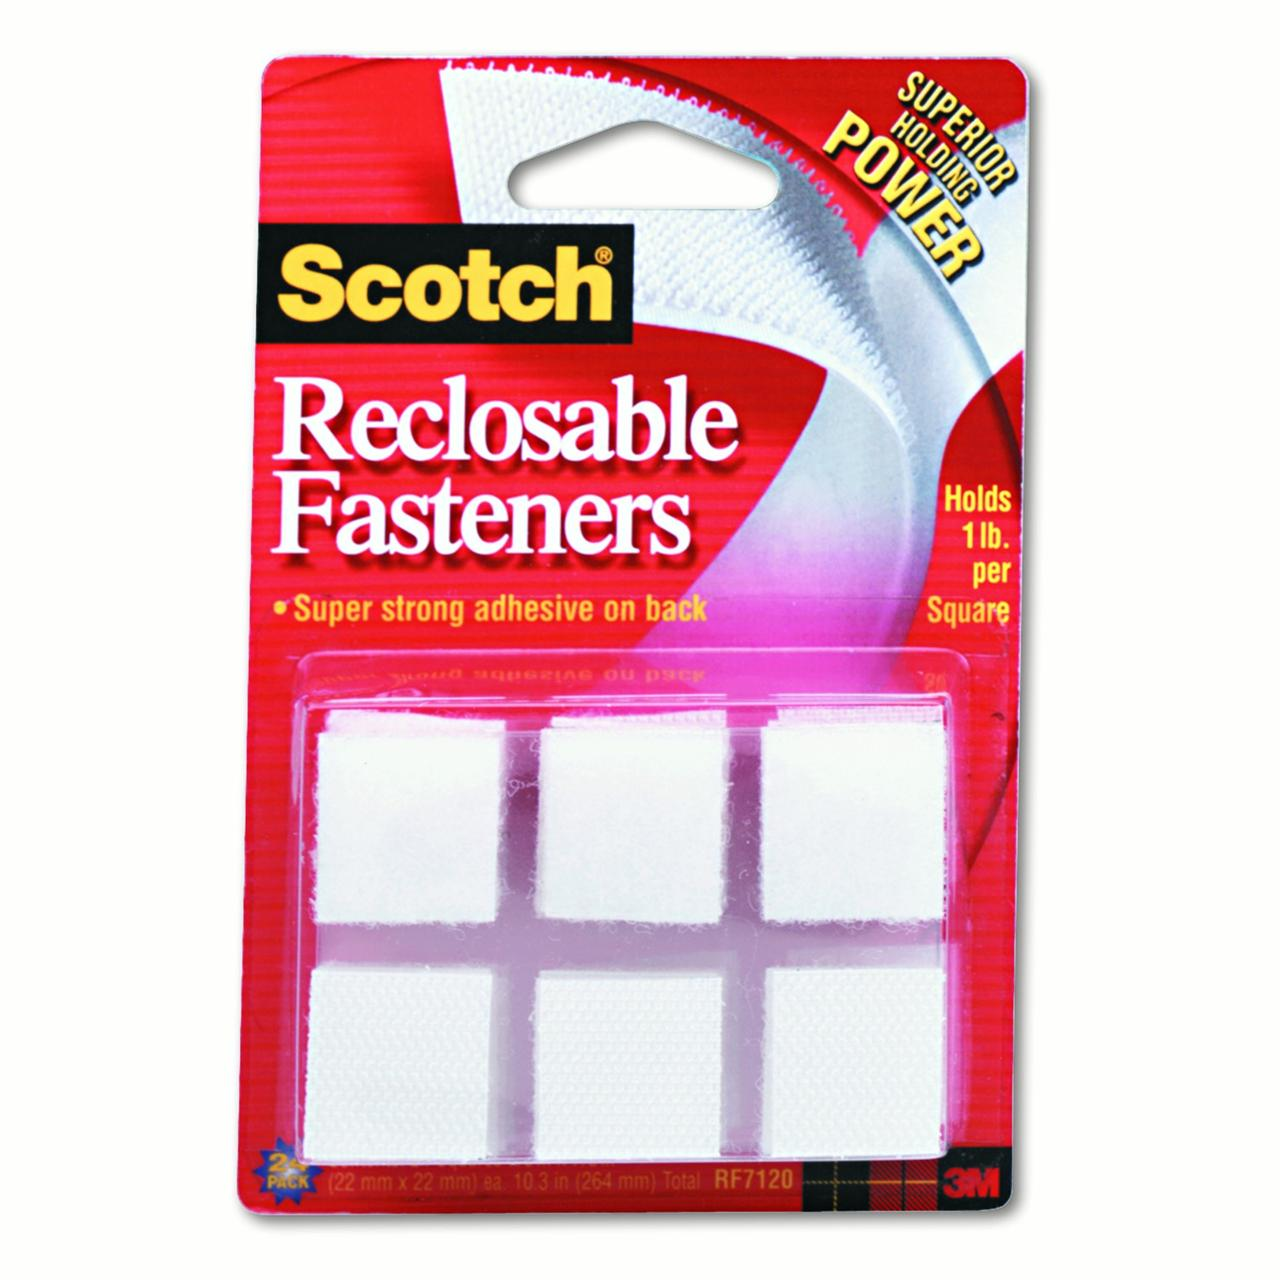 Scotch Recloseable Fasteners, White, 7/8in. x 7/8in. Squares, Pack Of 24